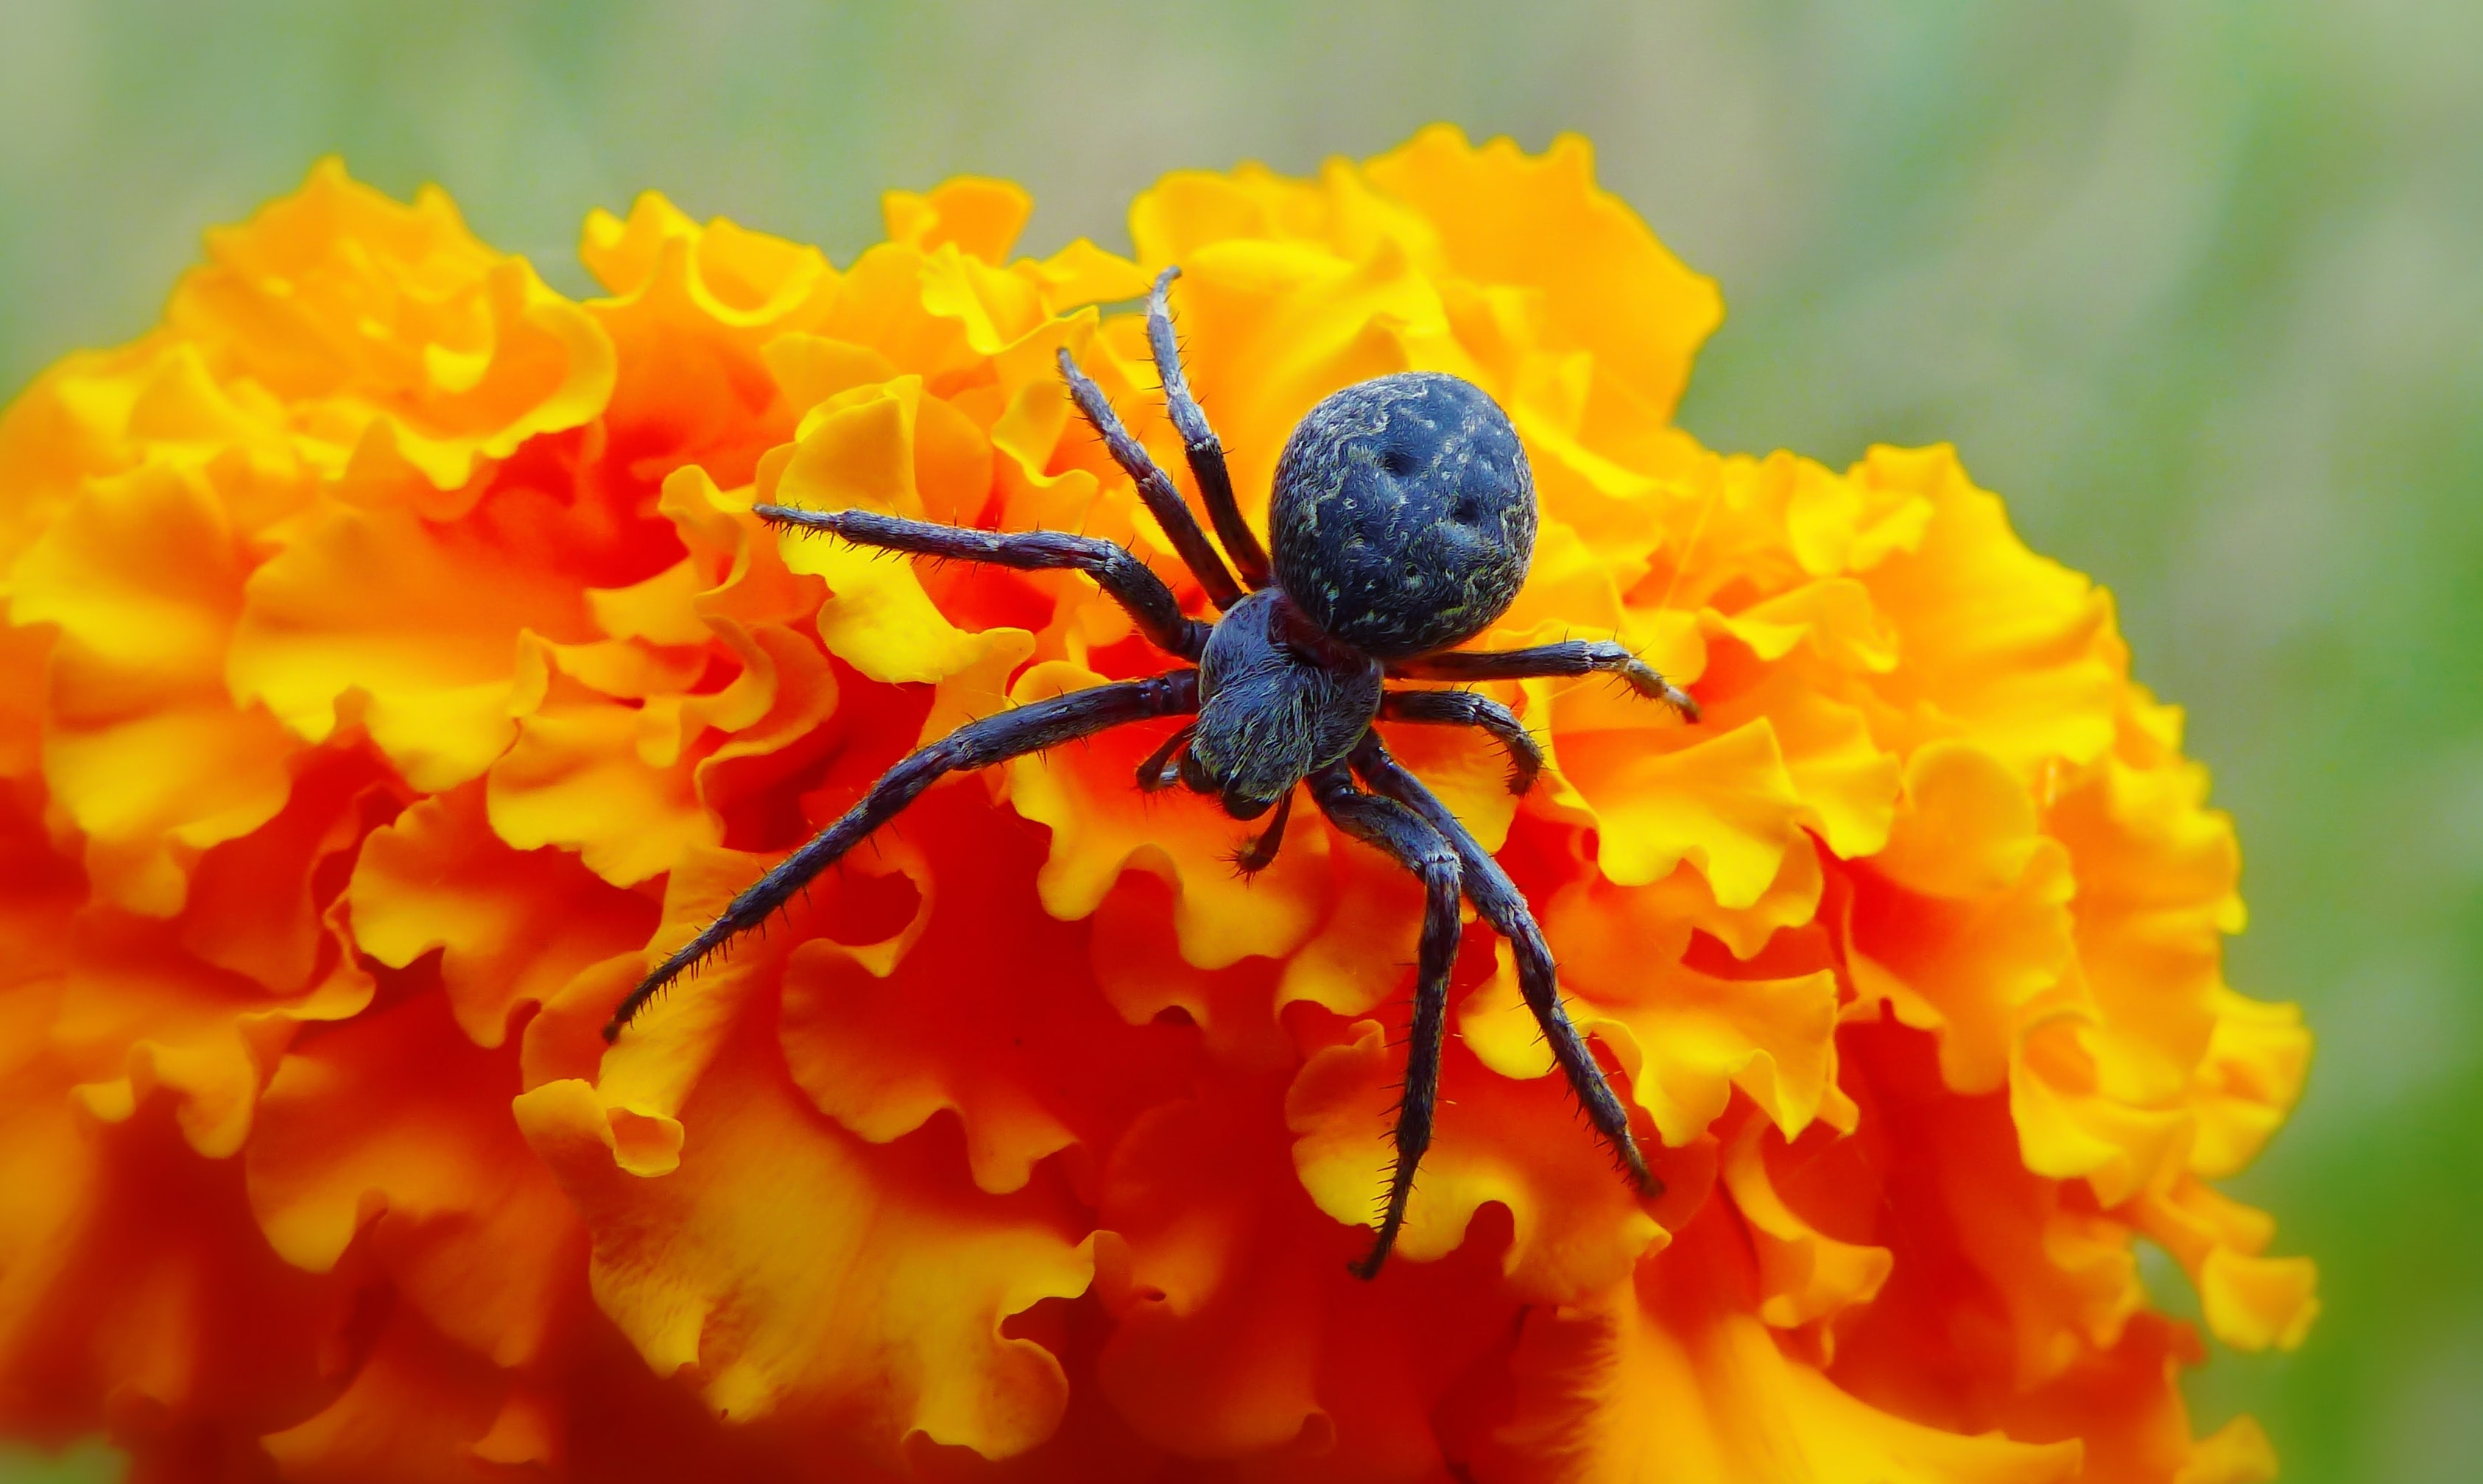 macro photography of black spider on orange flower